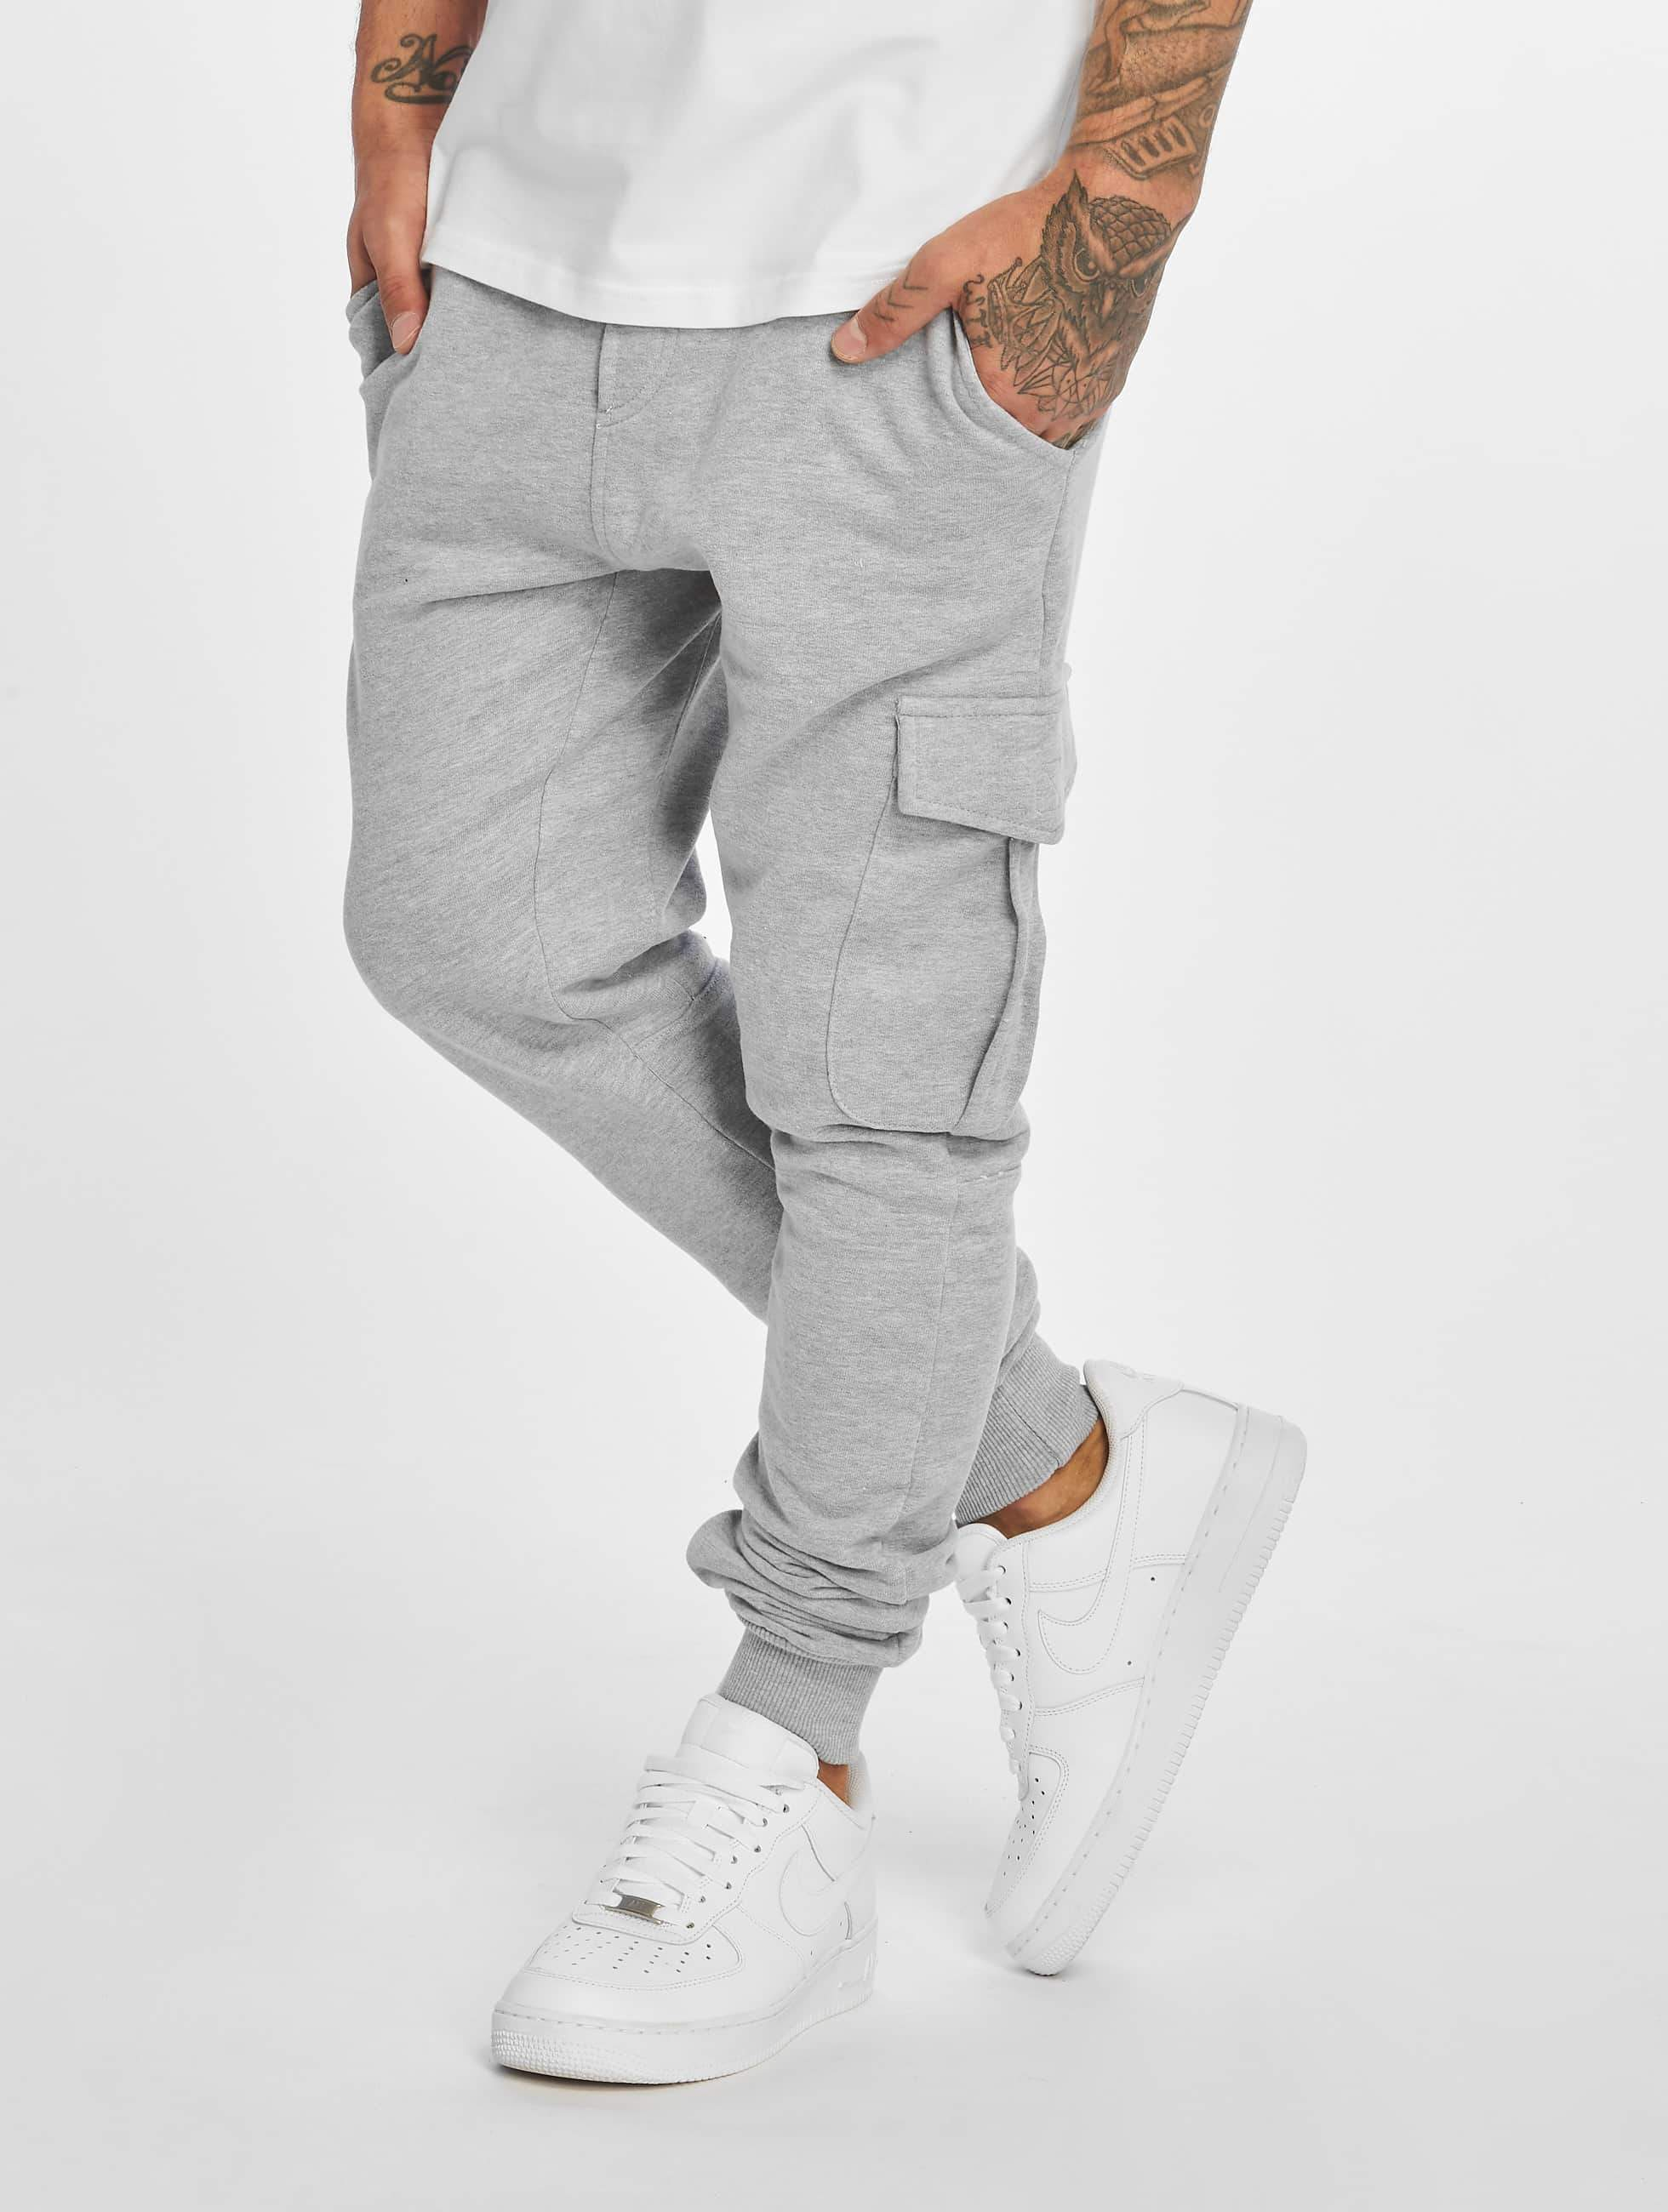 DEF / Sweat Pant Gringo in grey 2XL